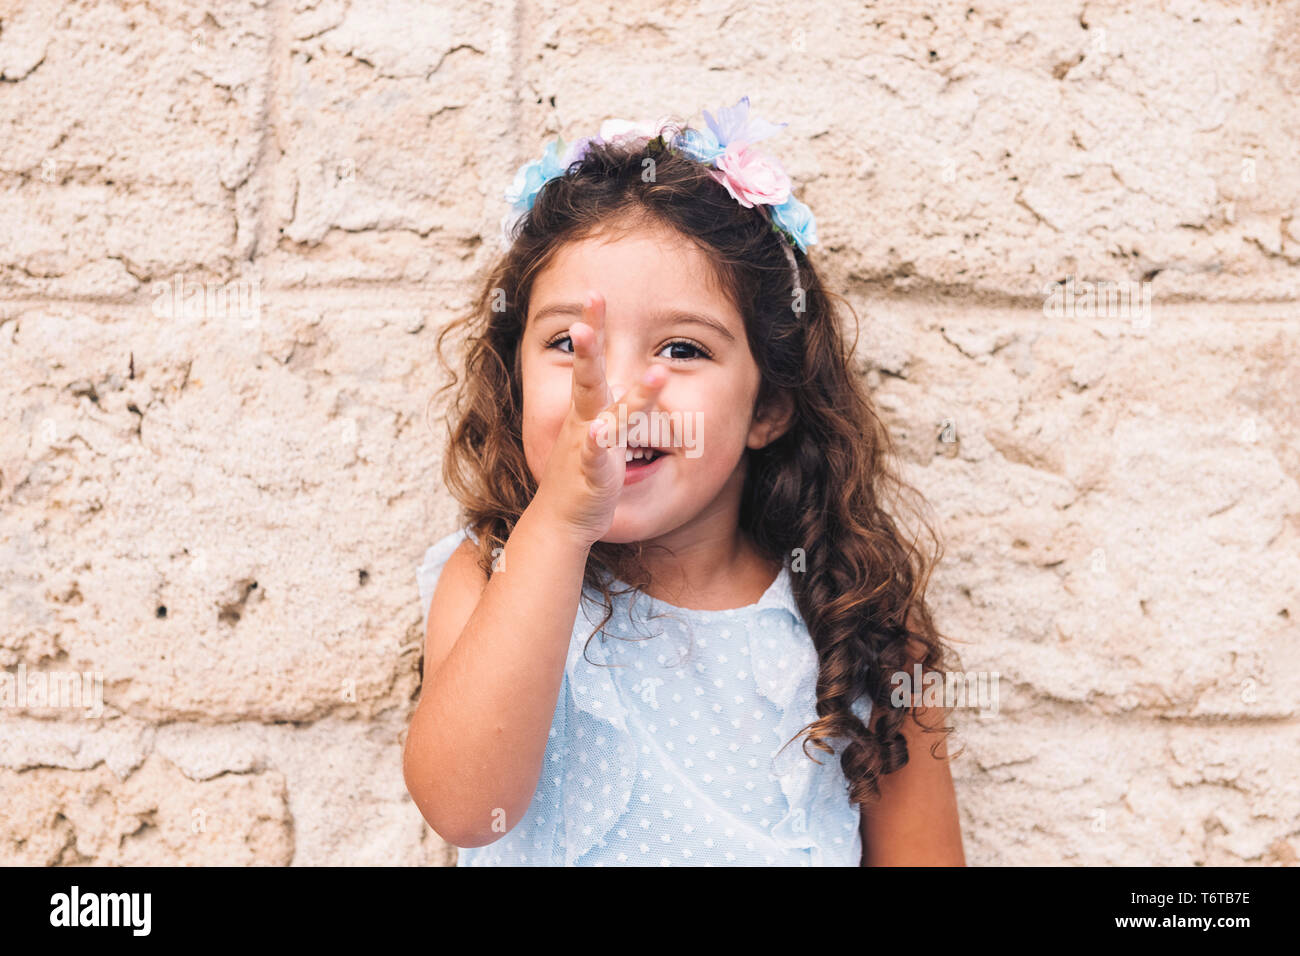 little girl making fun with her hand on her nose, is in front of a stone wall and wears a blue dress and a flower headband - Stock Image